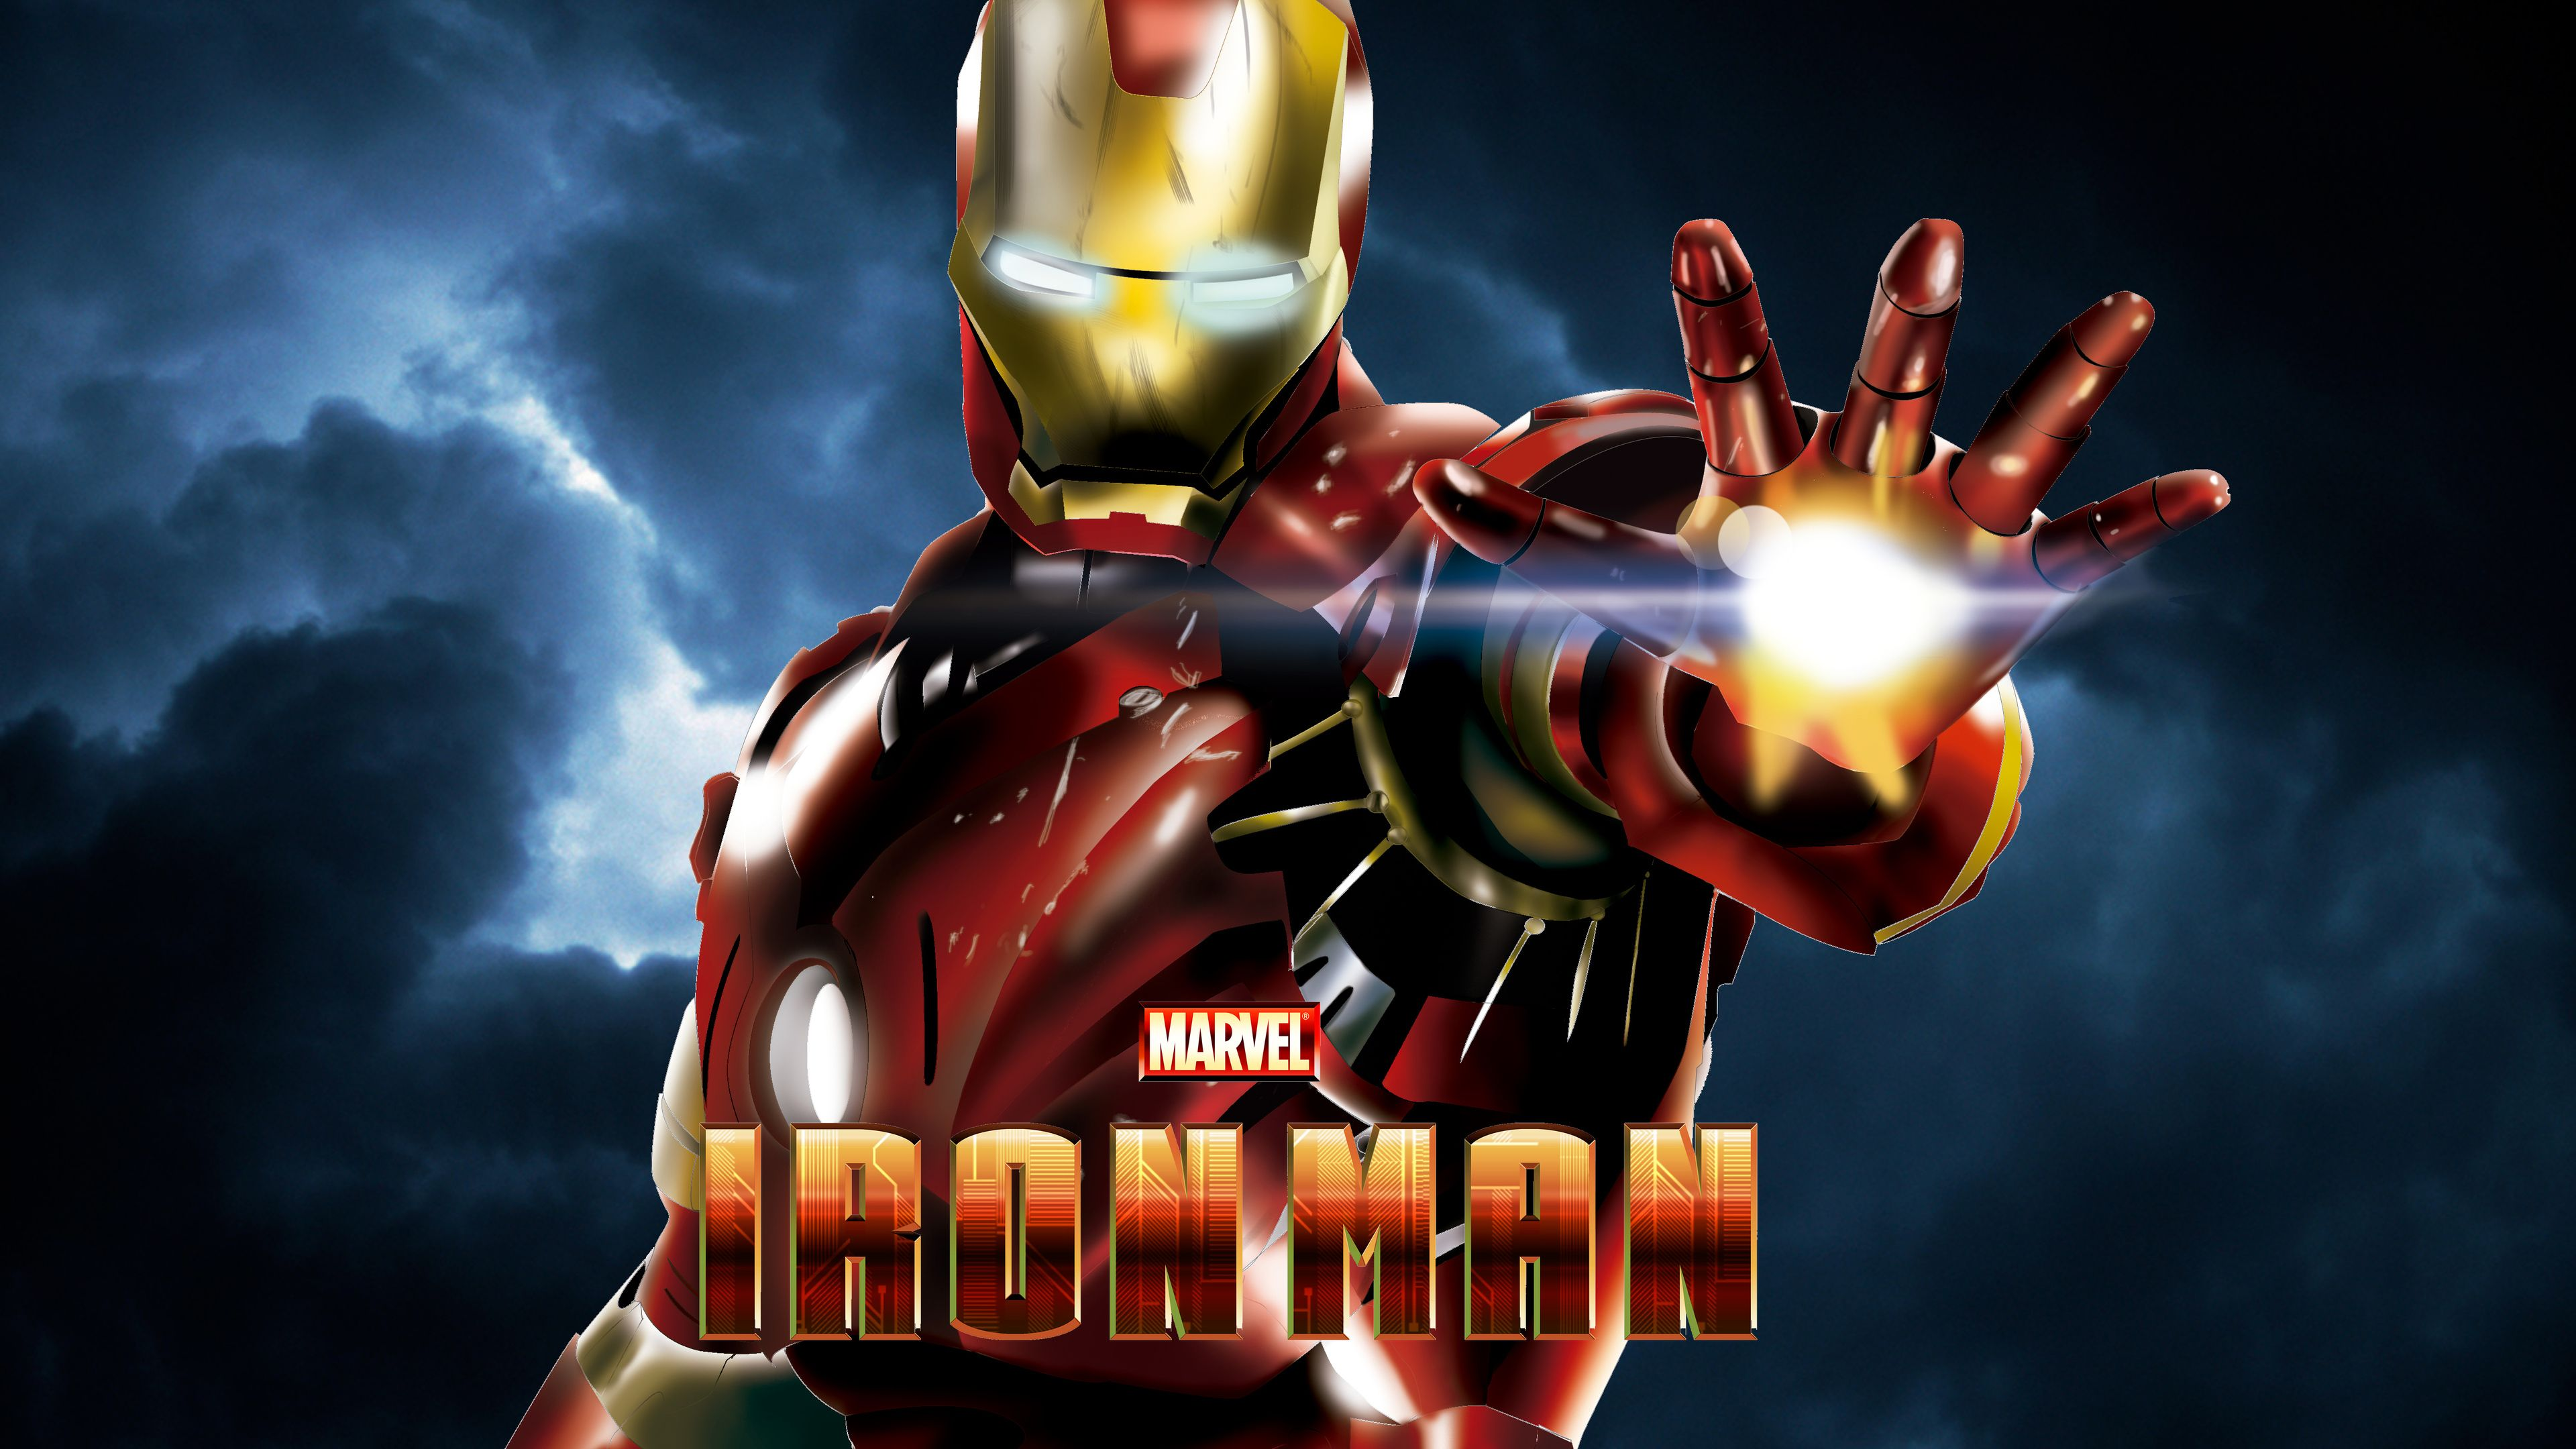 Iron Man Marvel 4k Superheroes Wallpapers Iron Man Wallpapers Hd Wallpapers Deviantart Wallpapers Artist Wallpapers Iron Man Iron Man Wallpaper Superhero